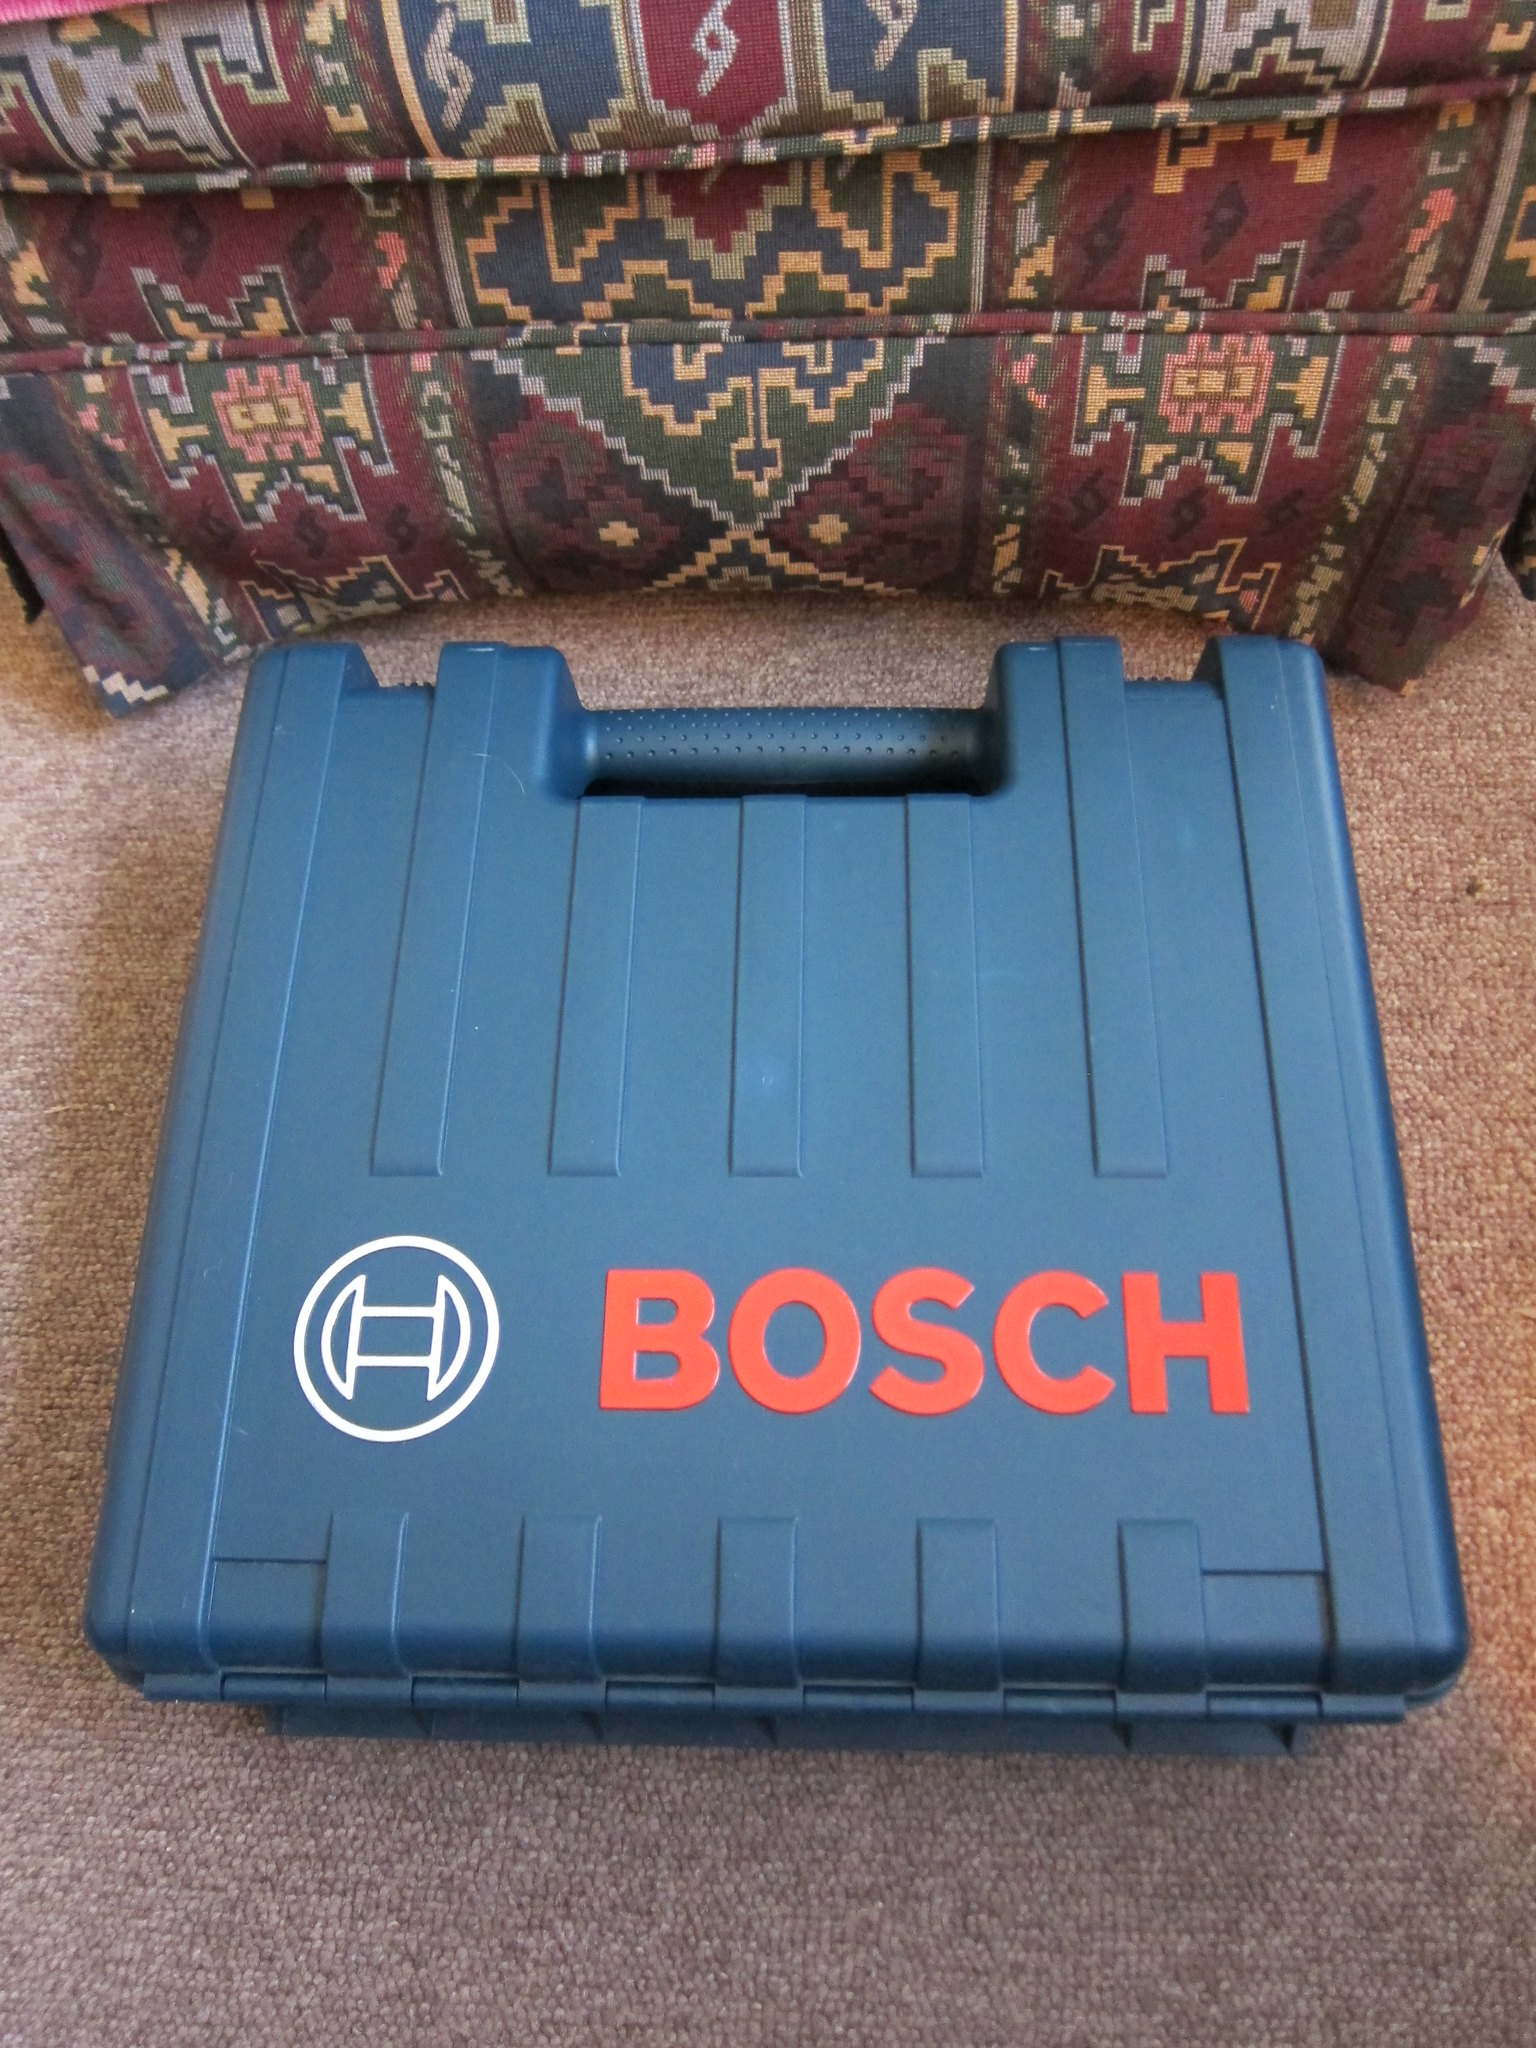 Molded plastic tool box, discarded